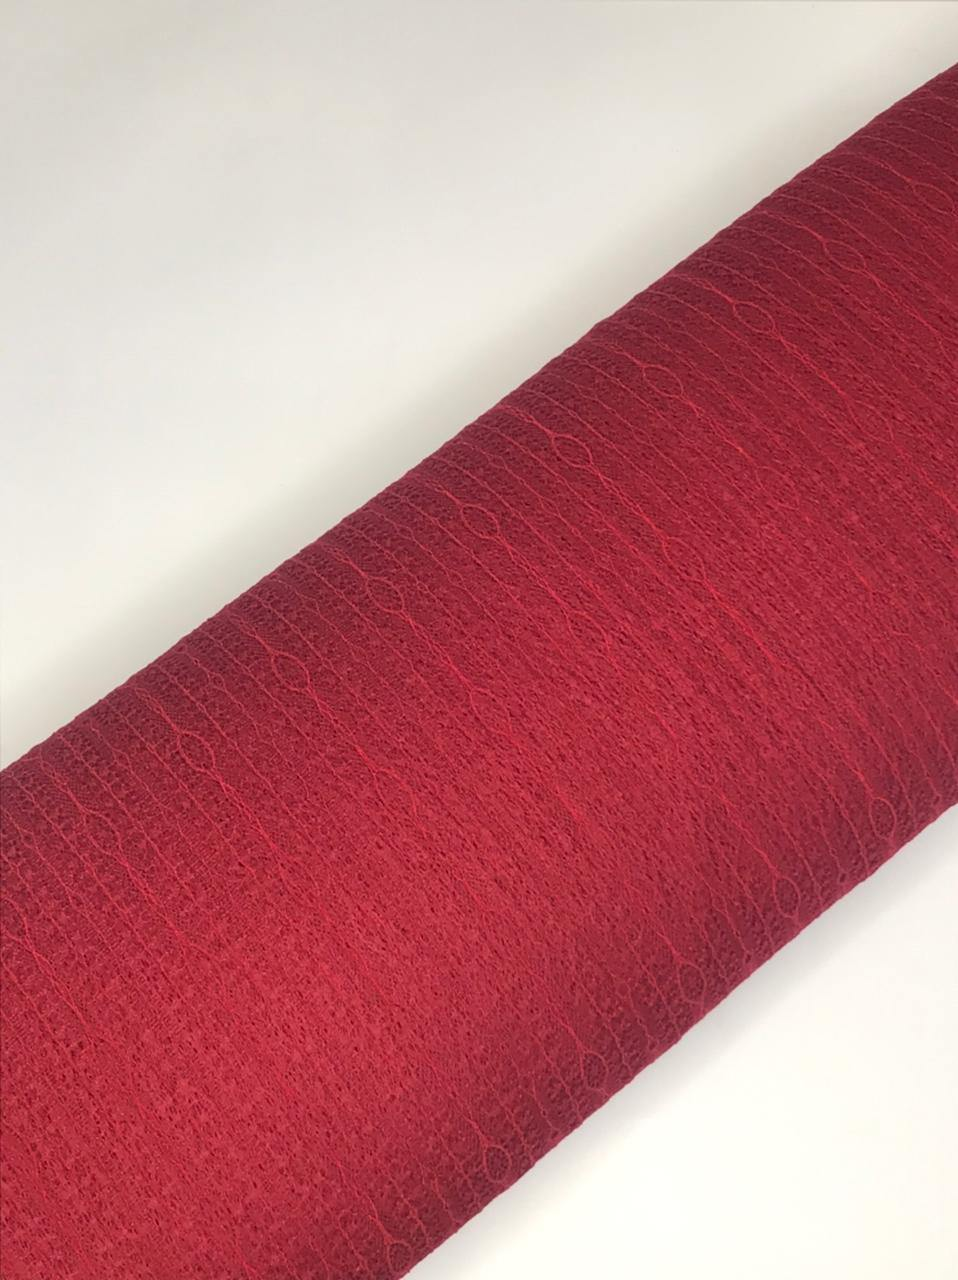 Imported Maroon Floral Lace Fabric (Width - 58 Inches)